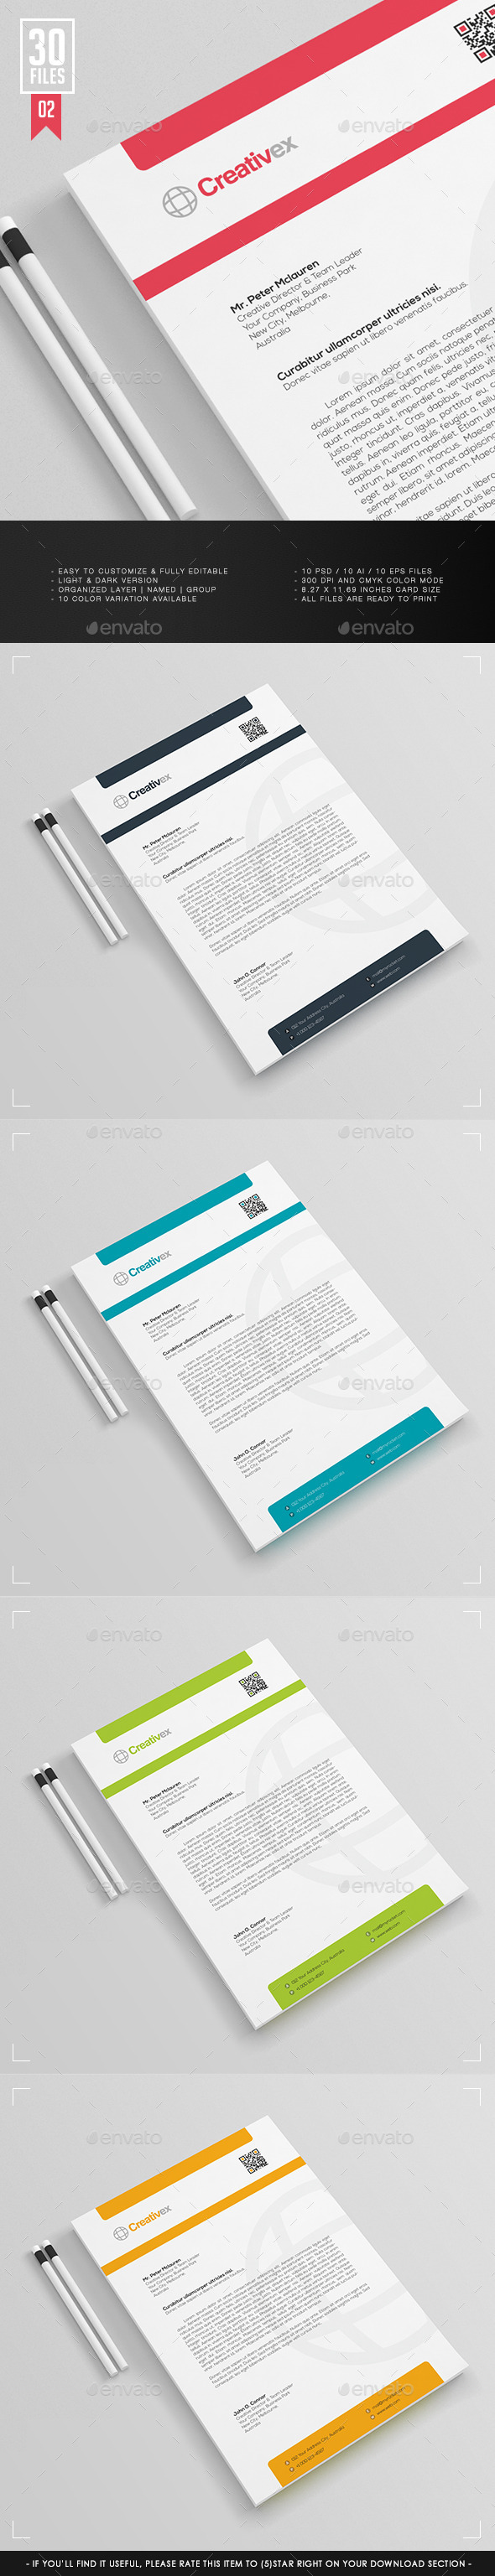 GraphicRiver A4 30 Files Business Letterhead V.001 11826673